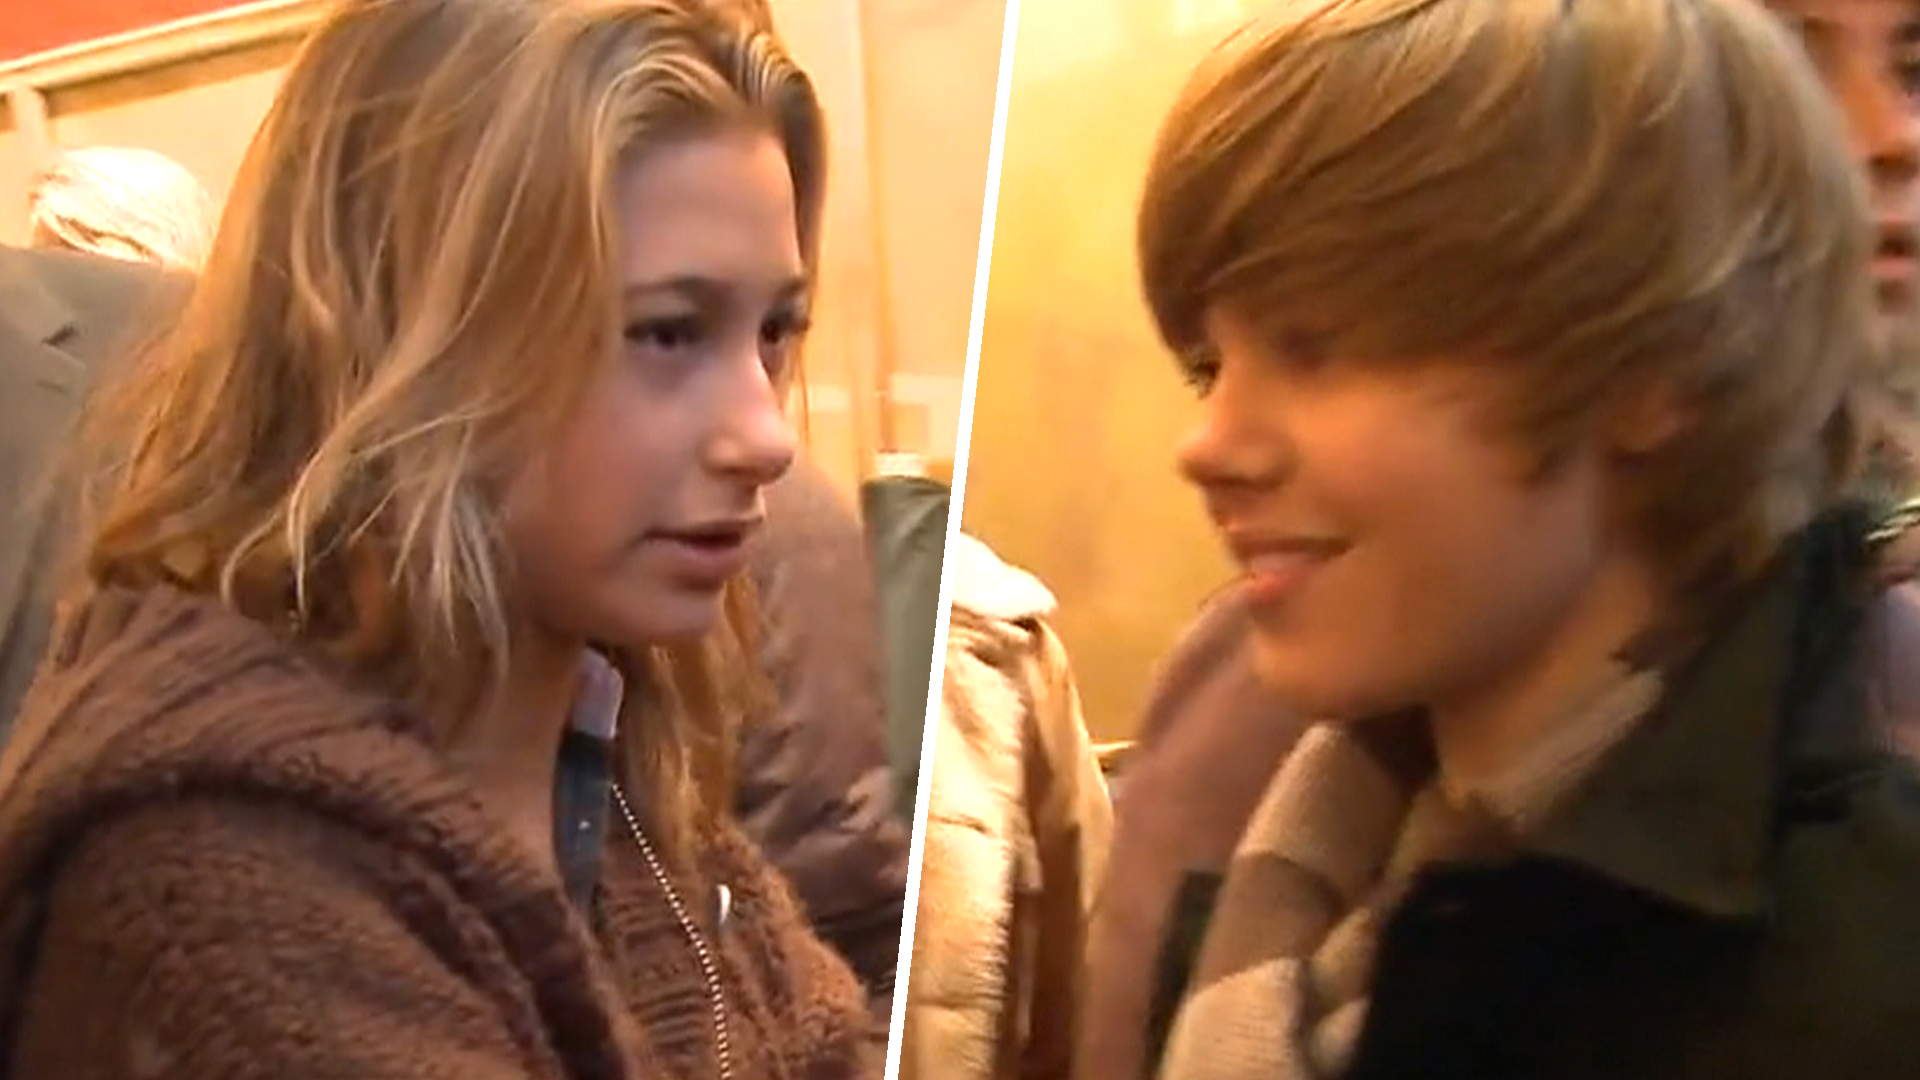 Hailey Baldwin and justing bieber 2009 pic